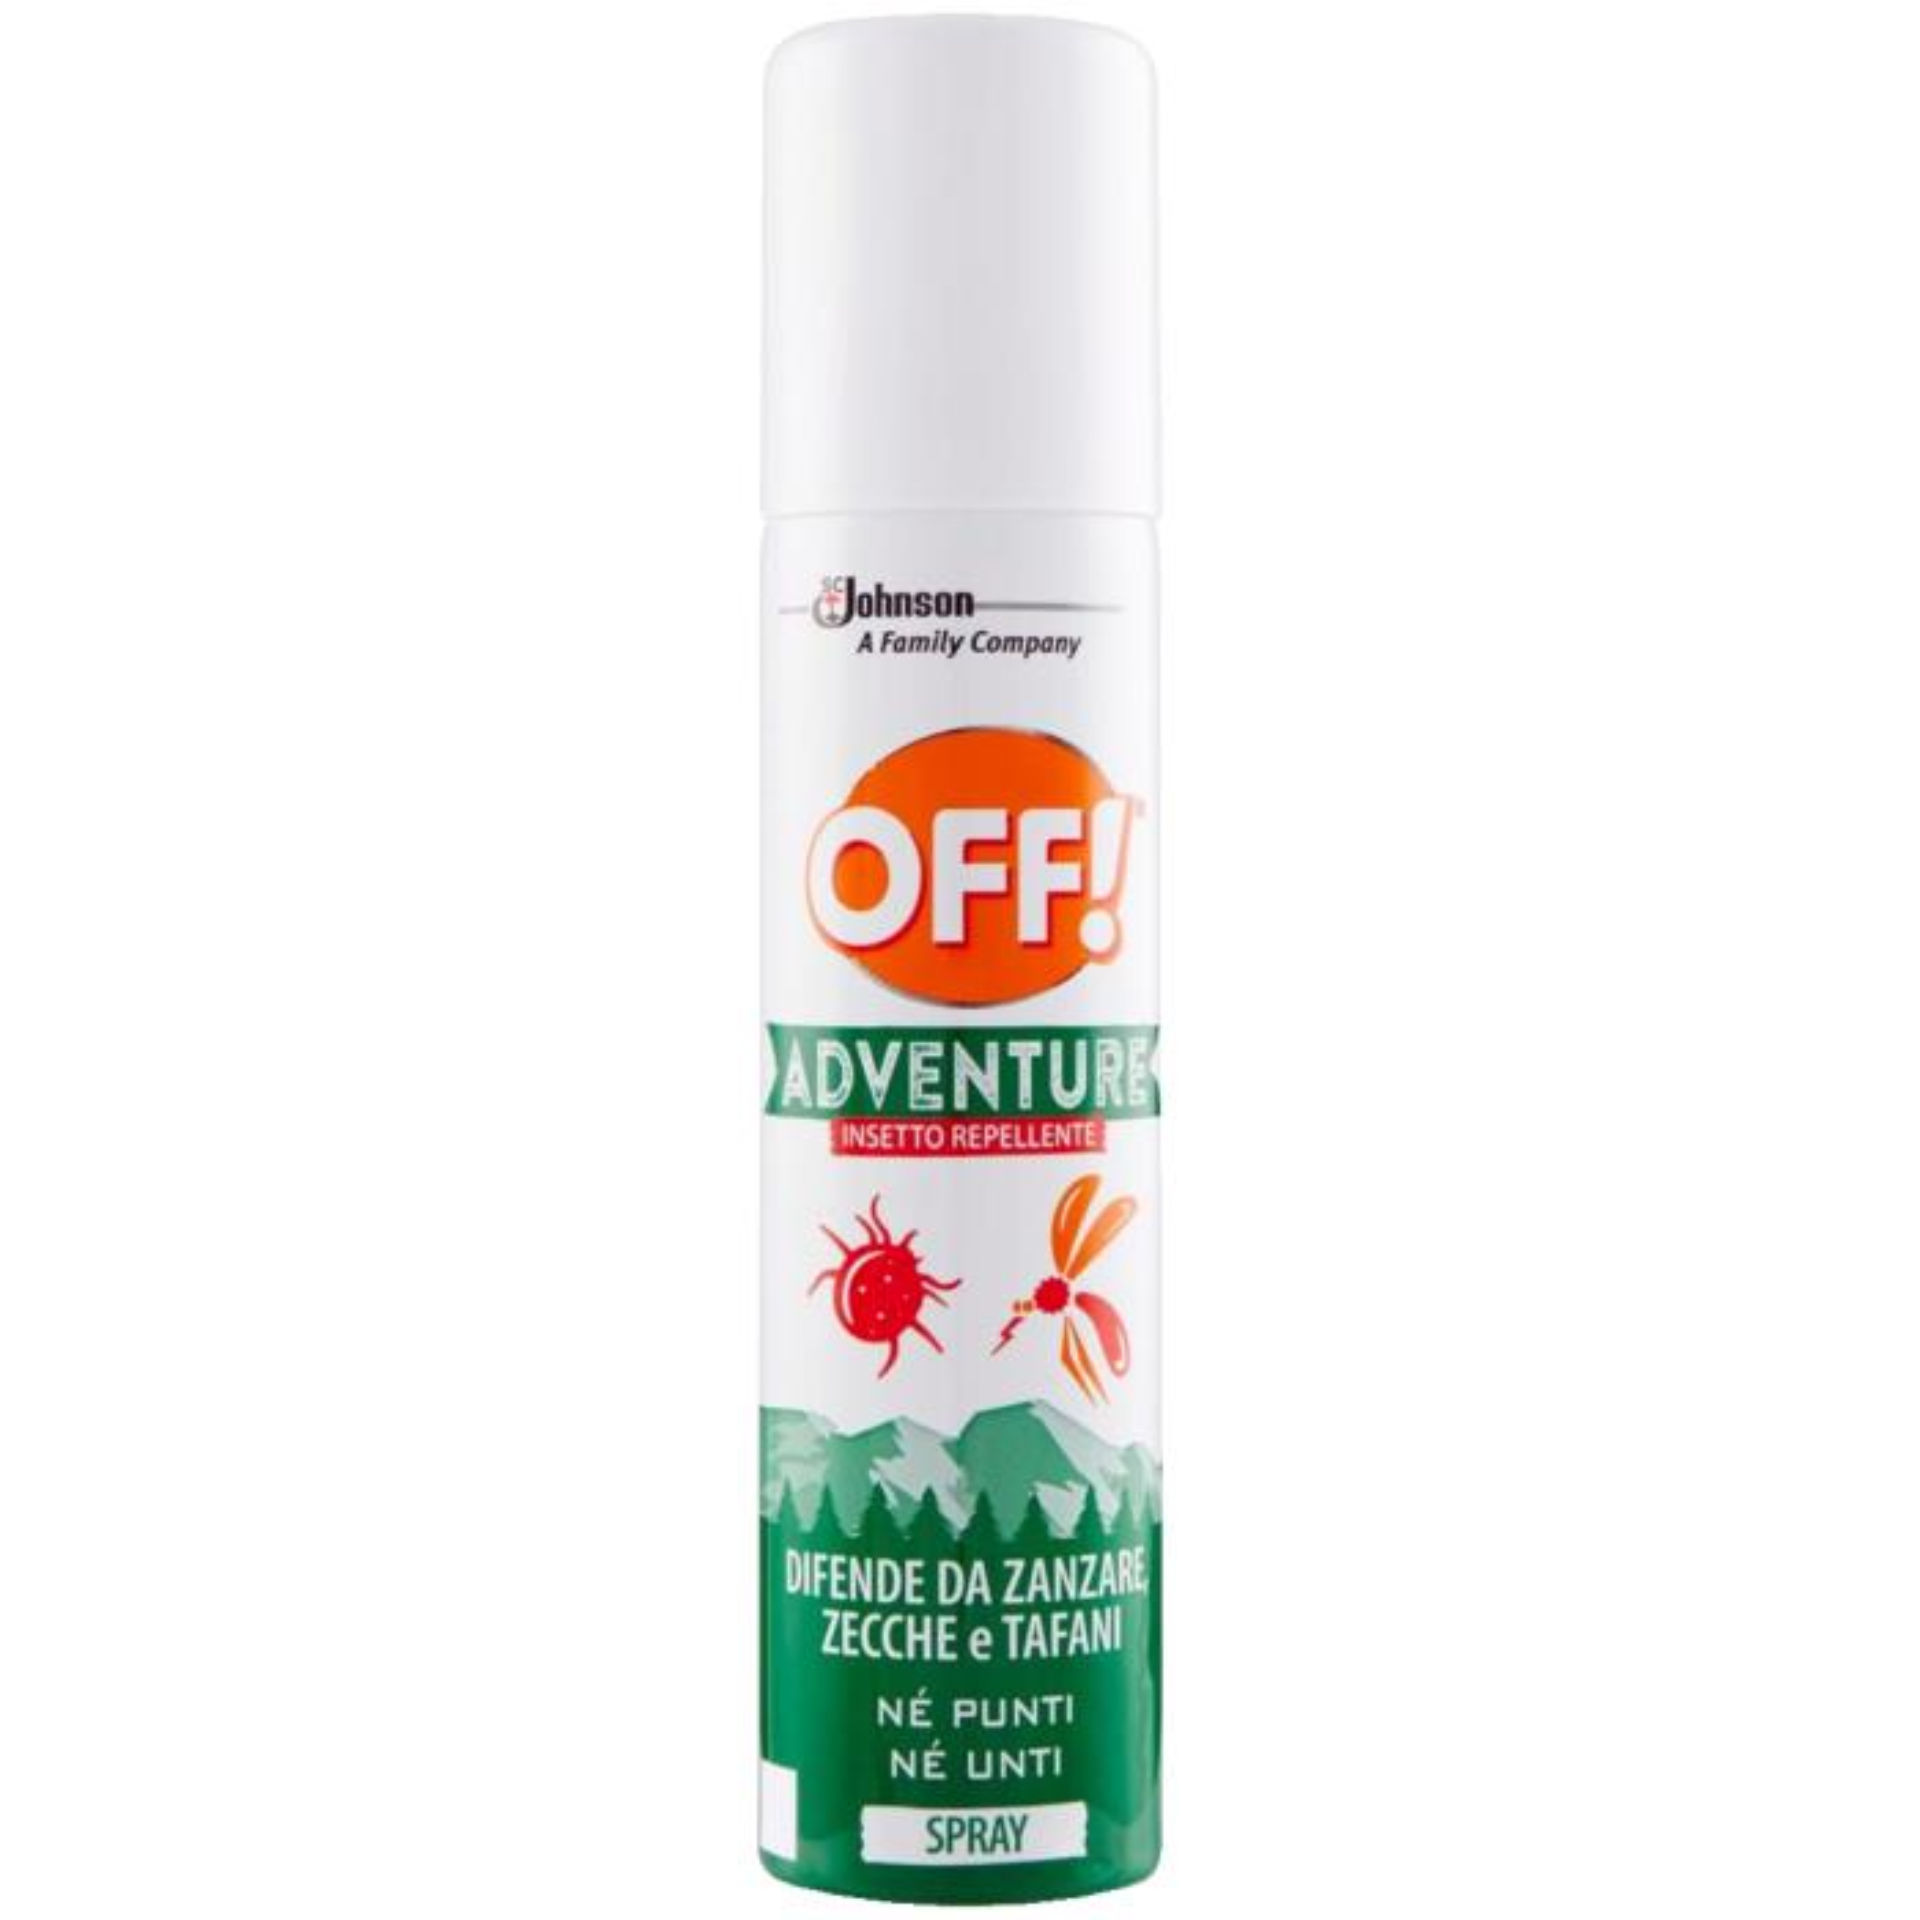 OFF ADVENTURE SPRAY A.410Off